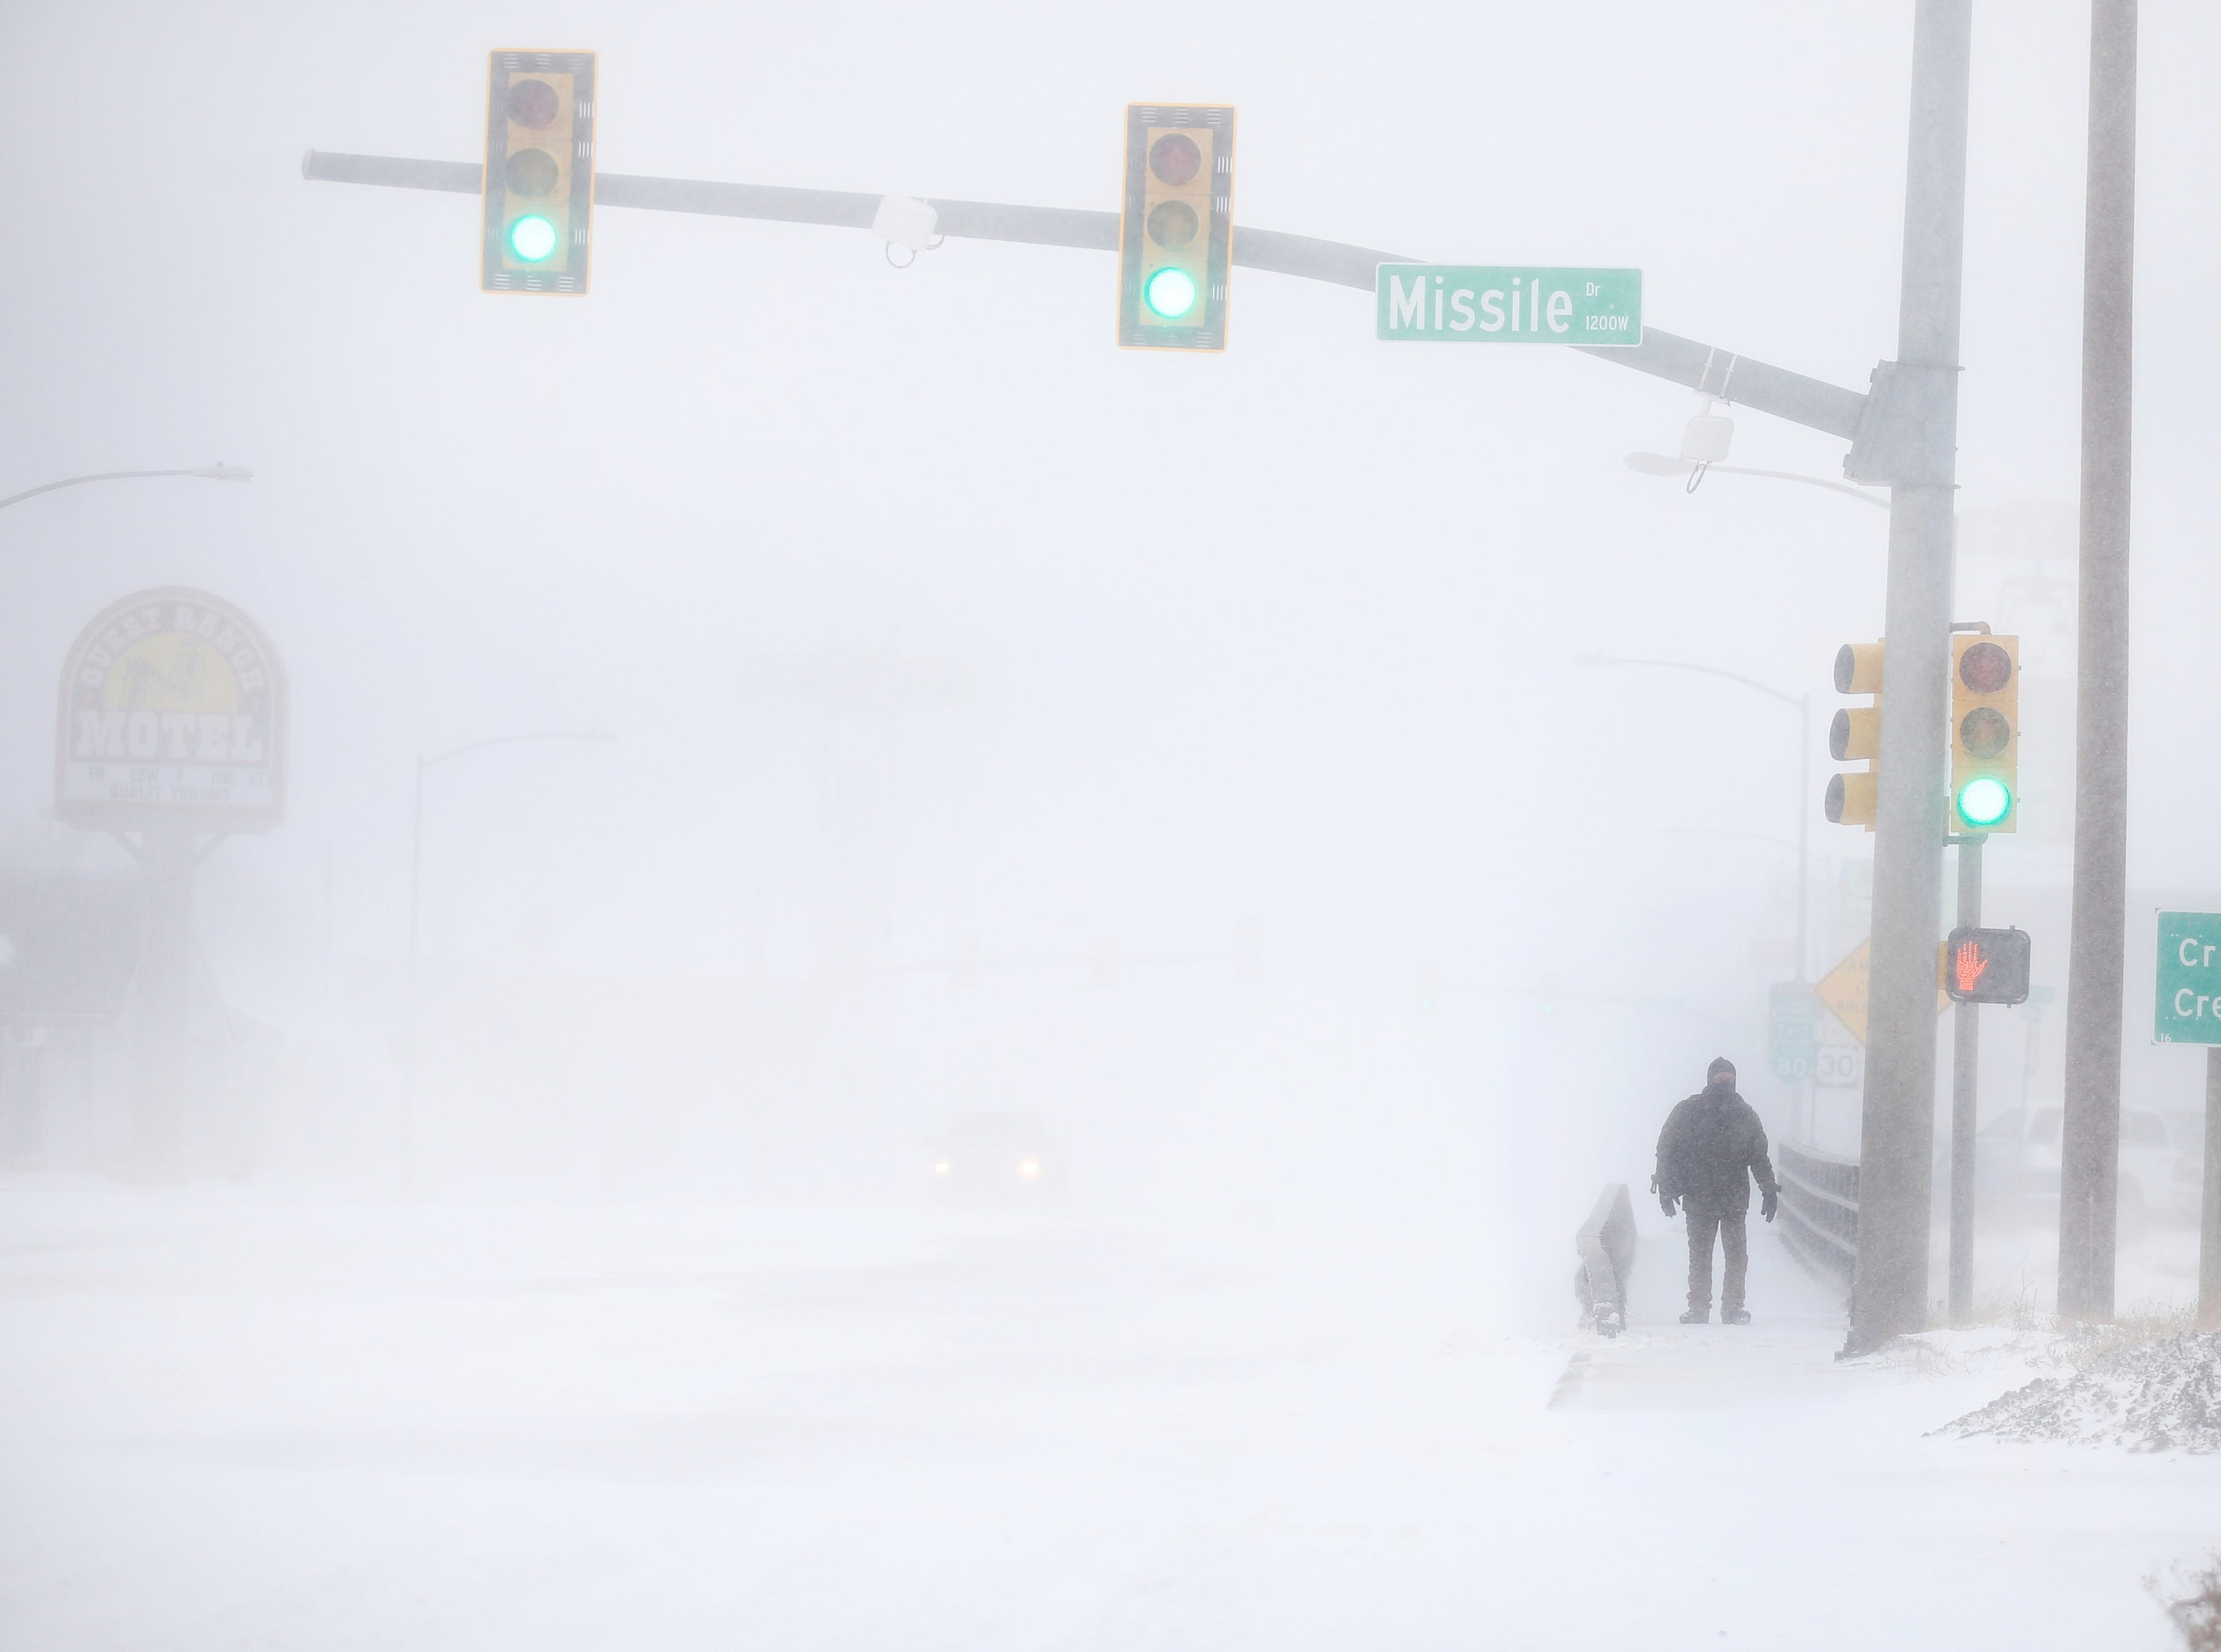 James Little crosses the street during a blizzard on Wednesday, March 13, 2019, in Cheyenne, Wyo.  Heavy snow hit Cheyenne about mid-morning Wednesday and was spreading into Colorado and Nebraska.